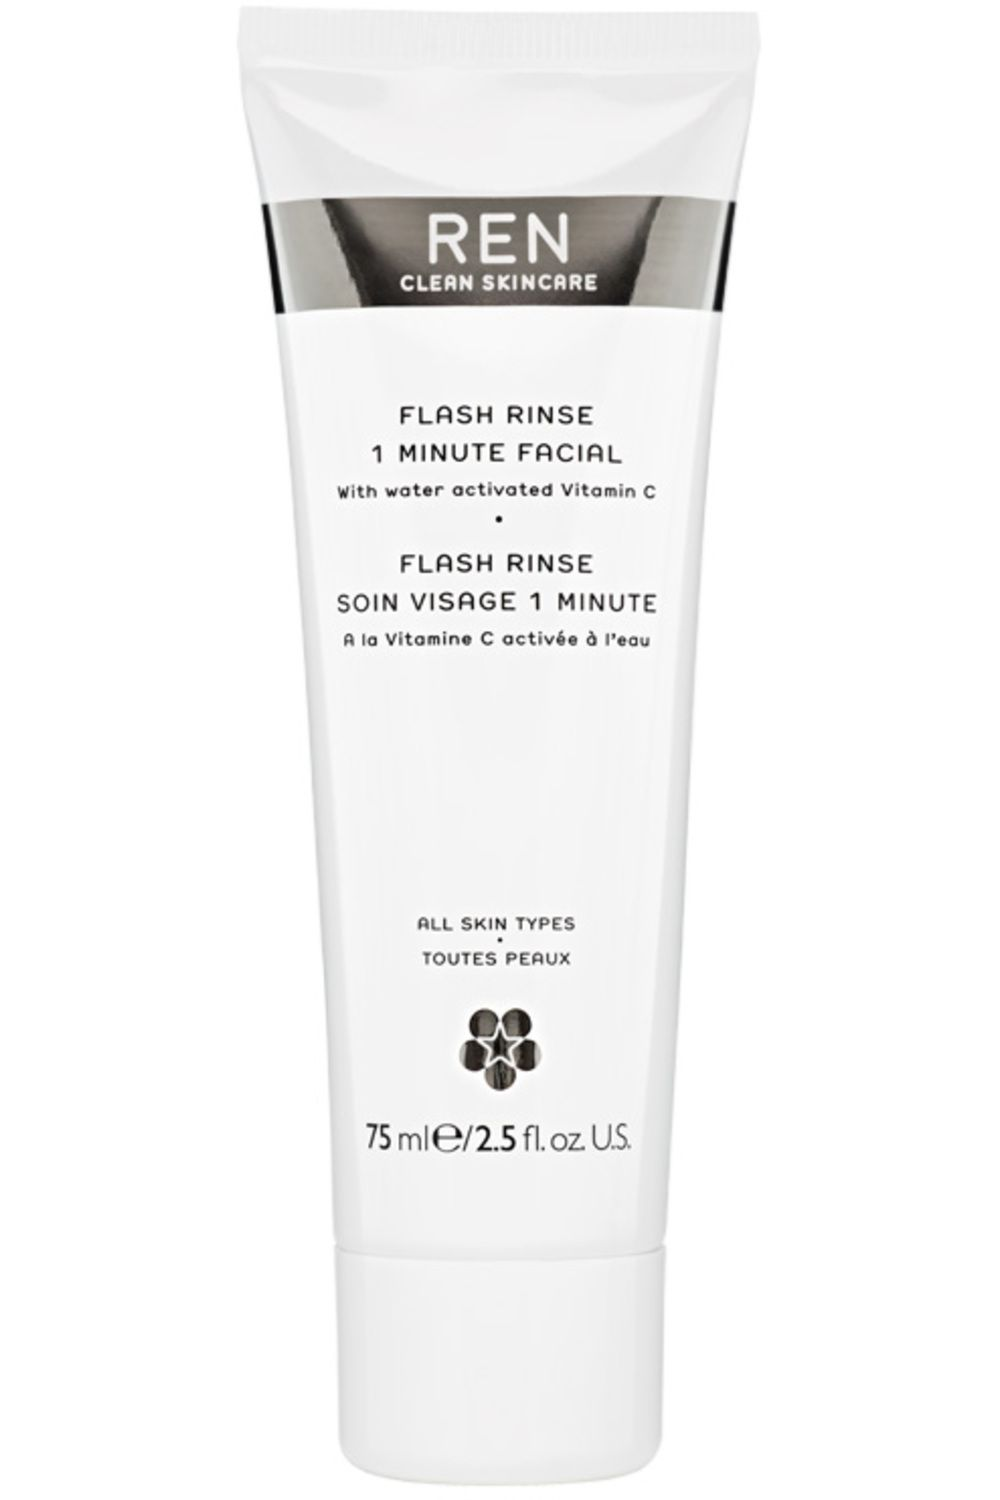 Blissim : REN - Soin visage express 1 minute - Flash Rinse